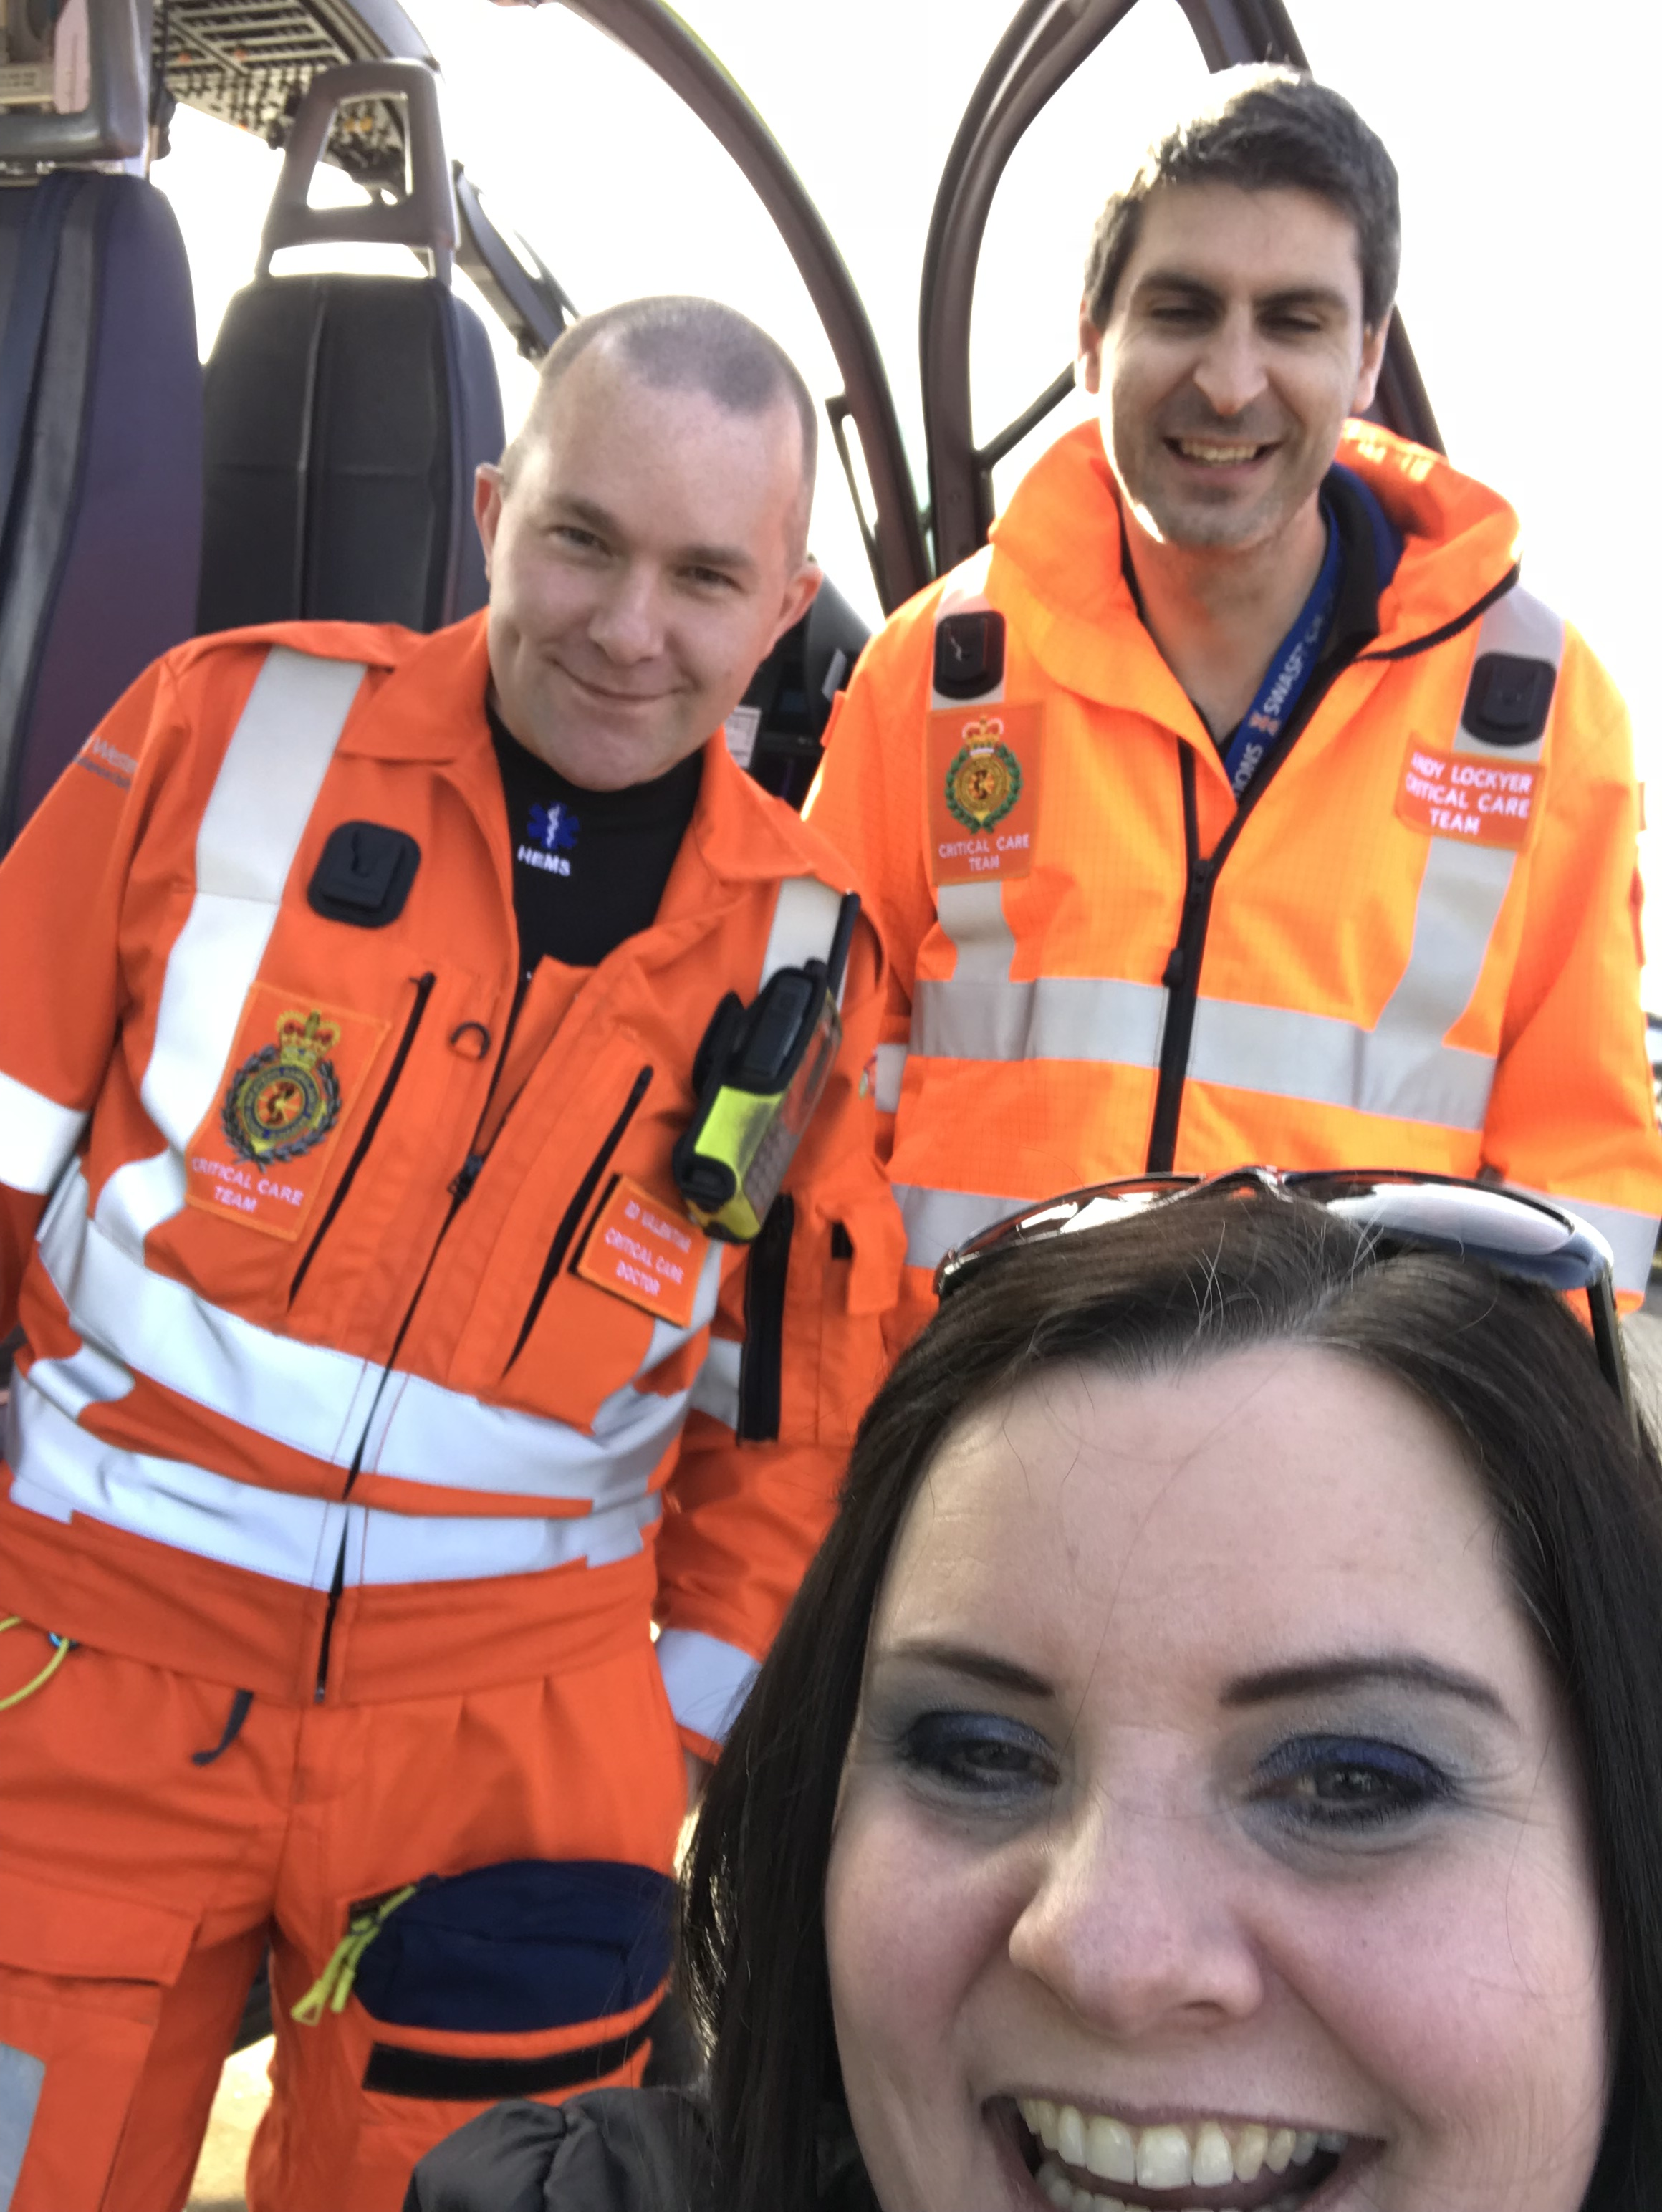 Meeting the critical care team